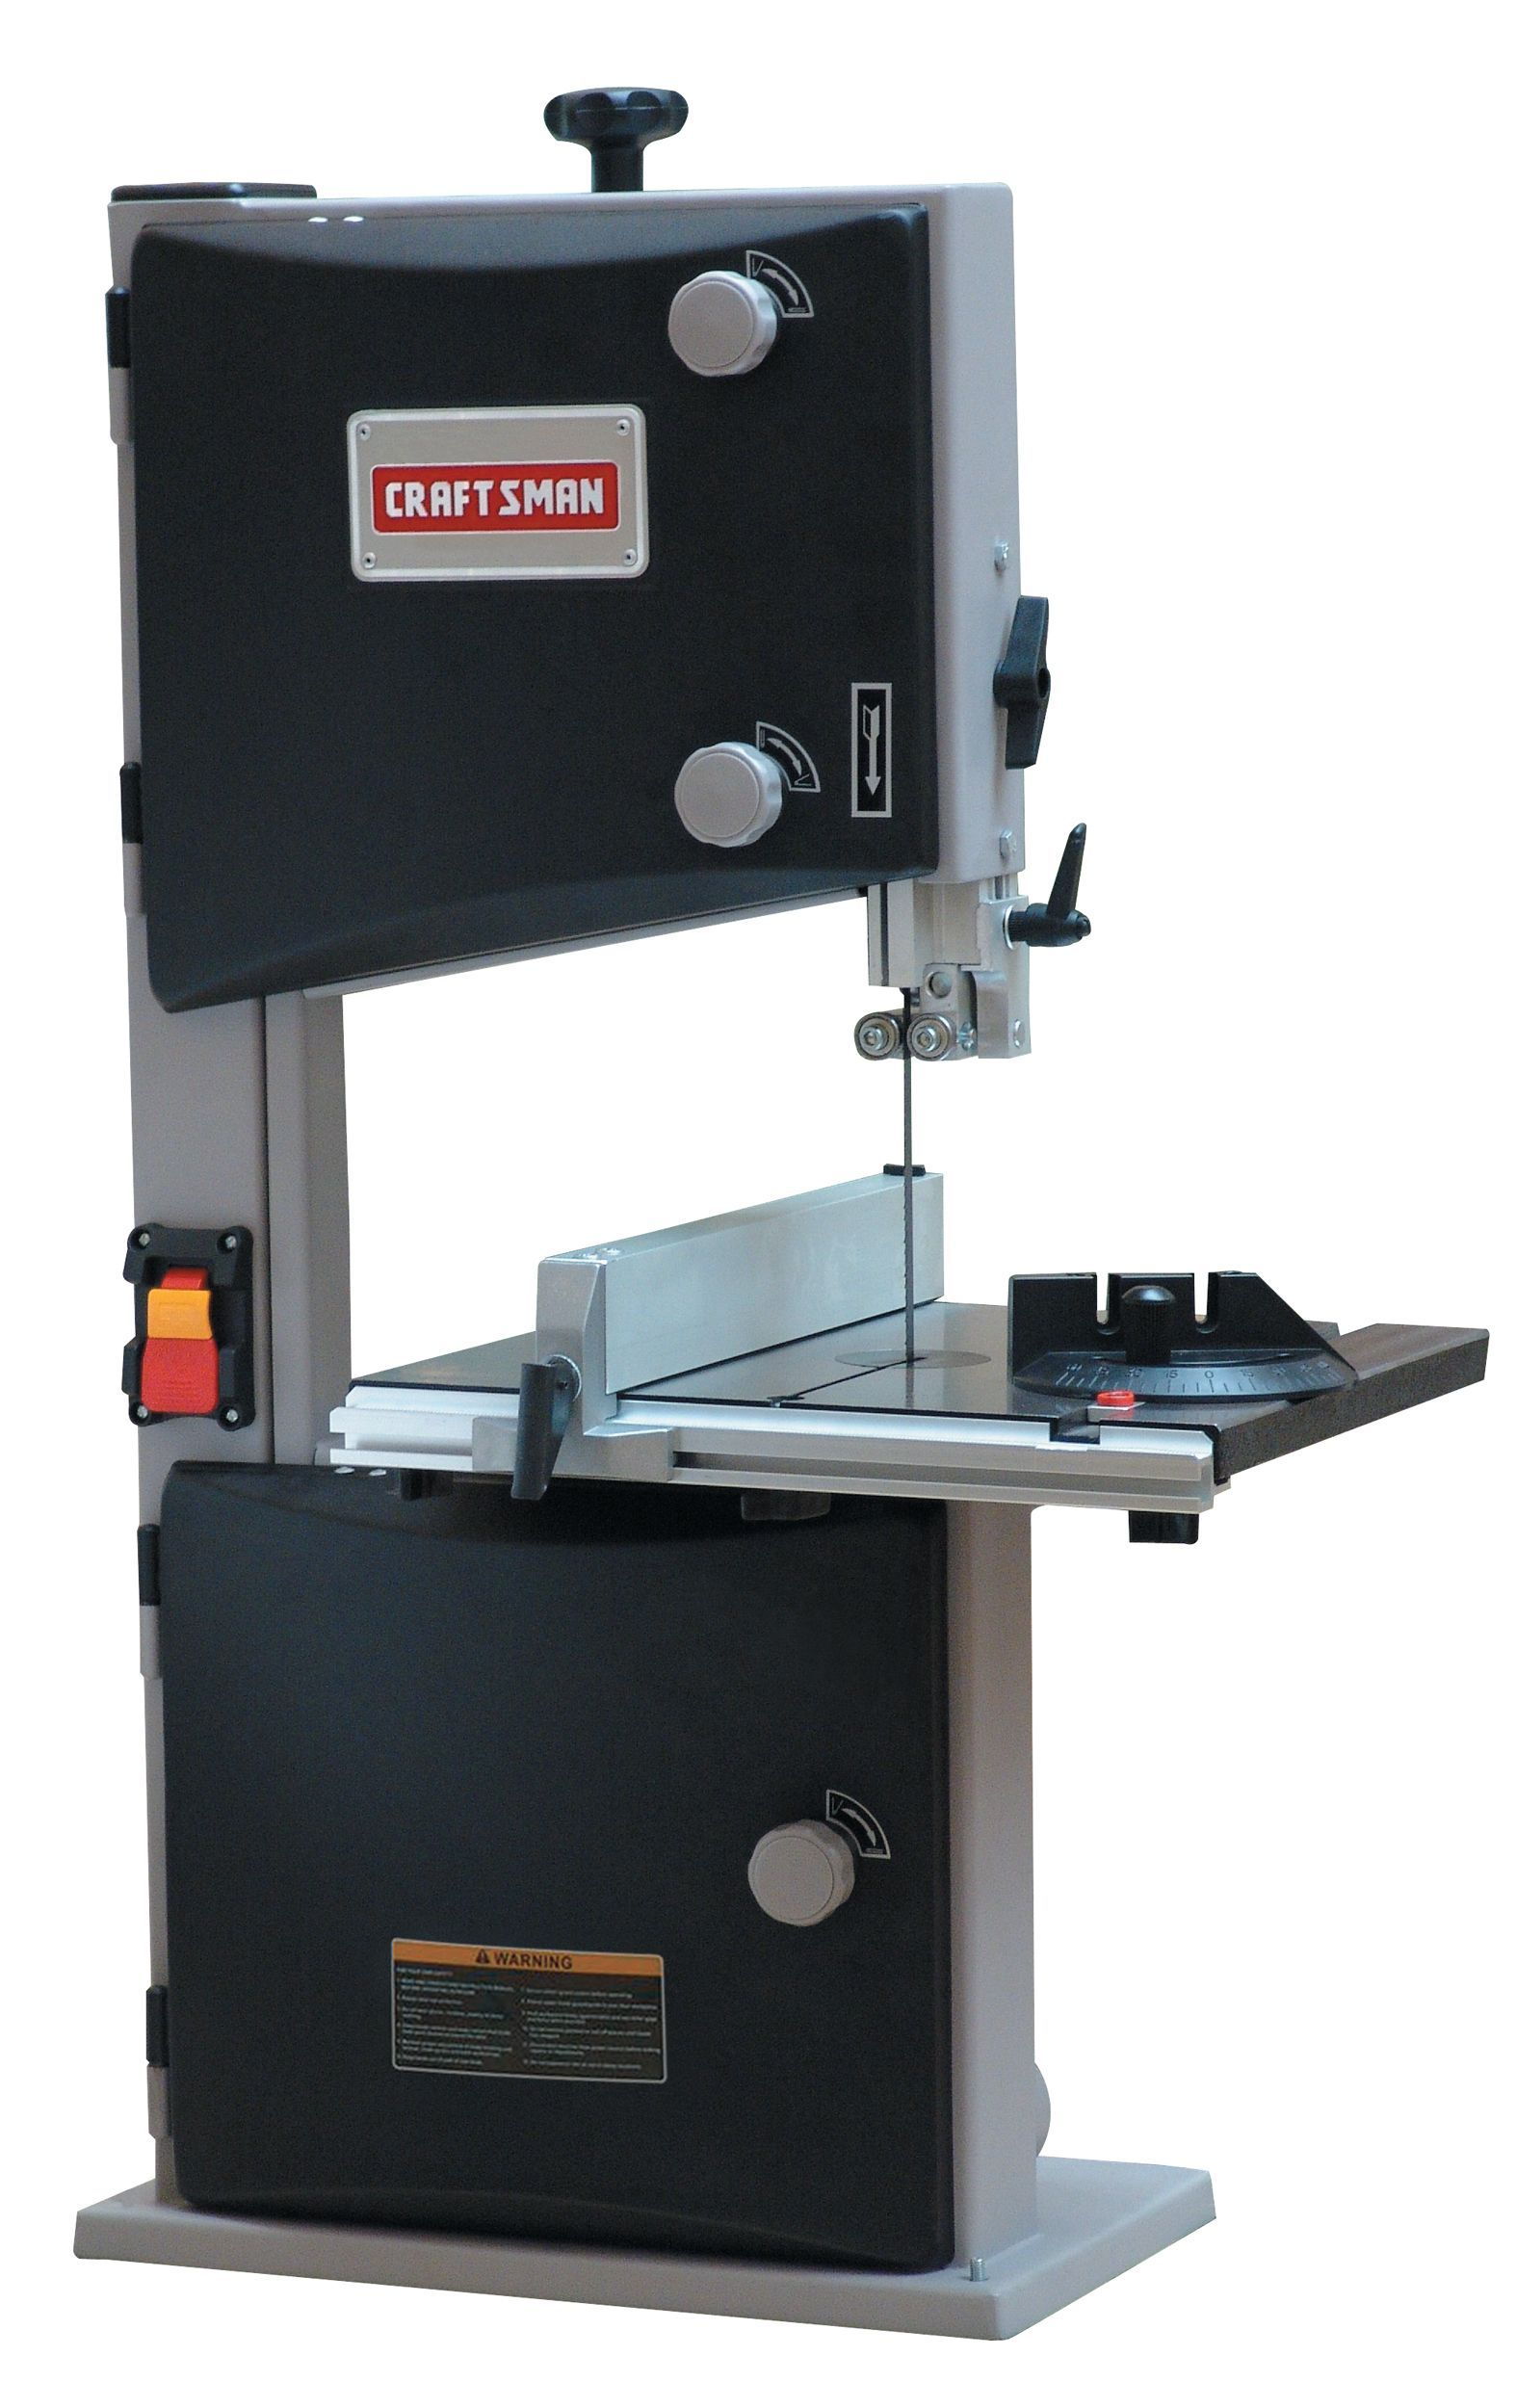 attack to bench or bandsaw sharp thompson meat equipment top rent own gg buy catalogue